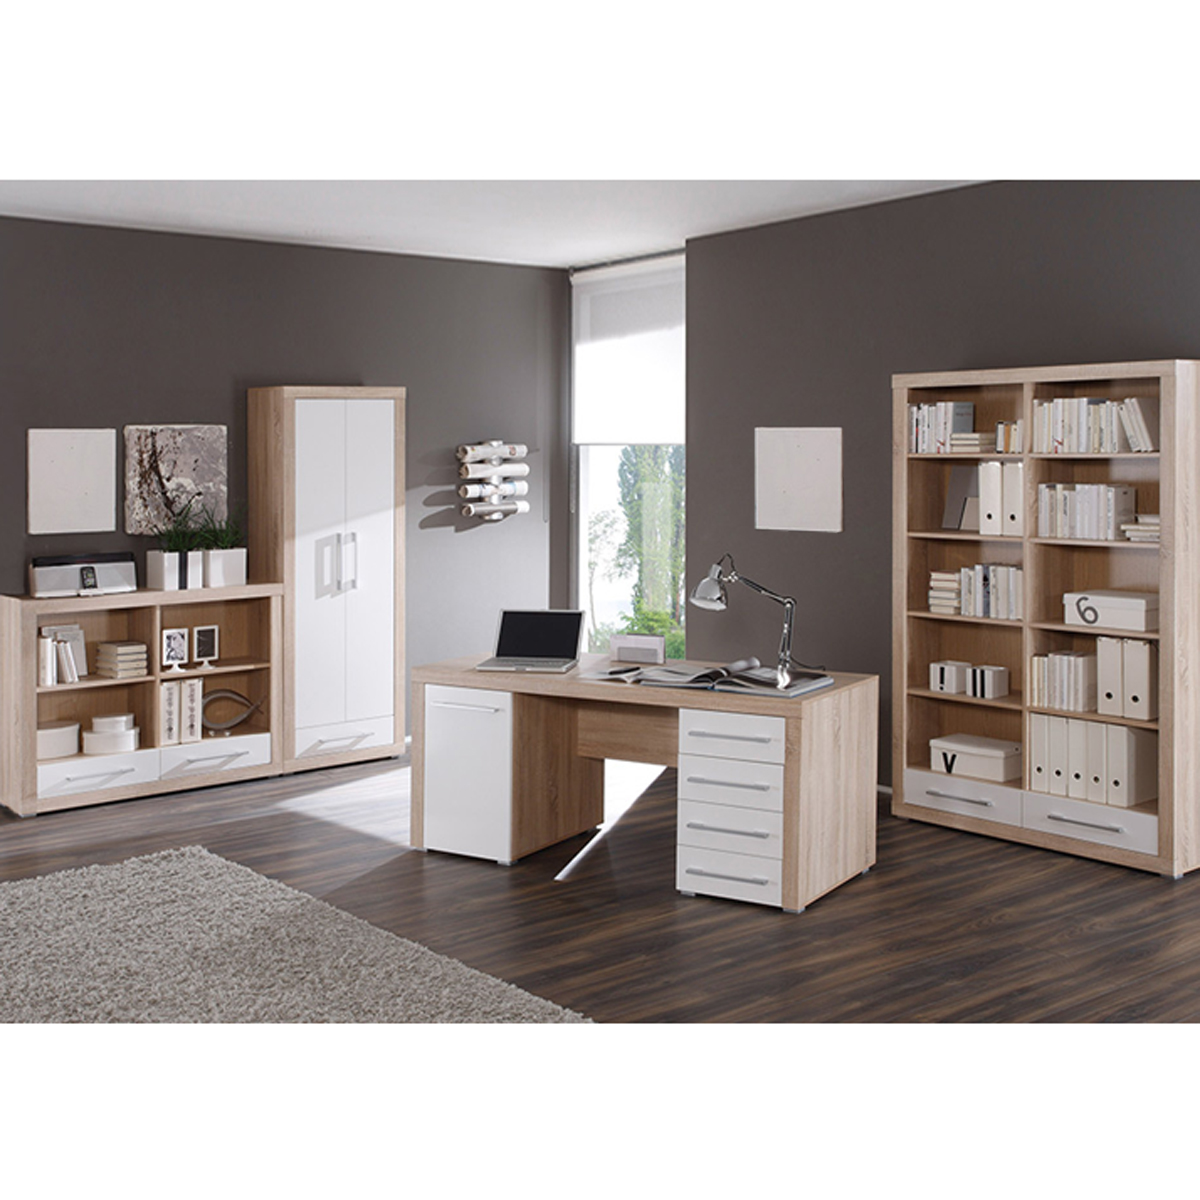 b ro cube b rom bel set 4 teilig wei und sonoma eiche schreibtisch regale. Black Bedroom Furniture Sets. Home Design Ideas